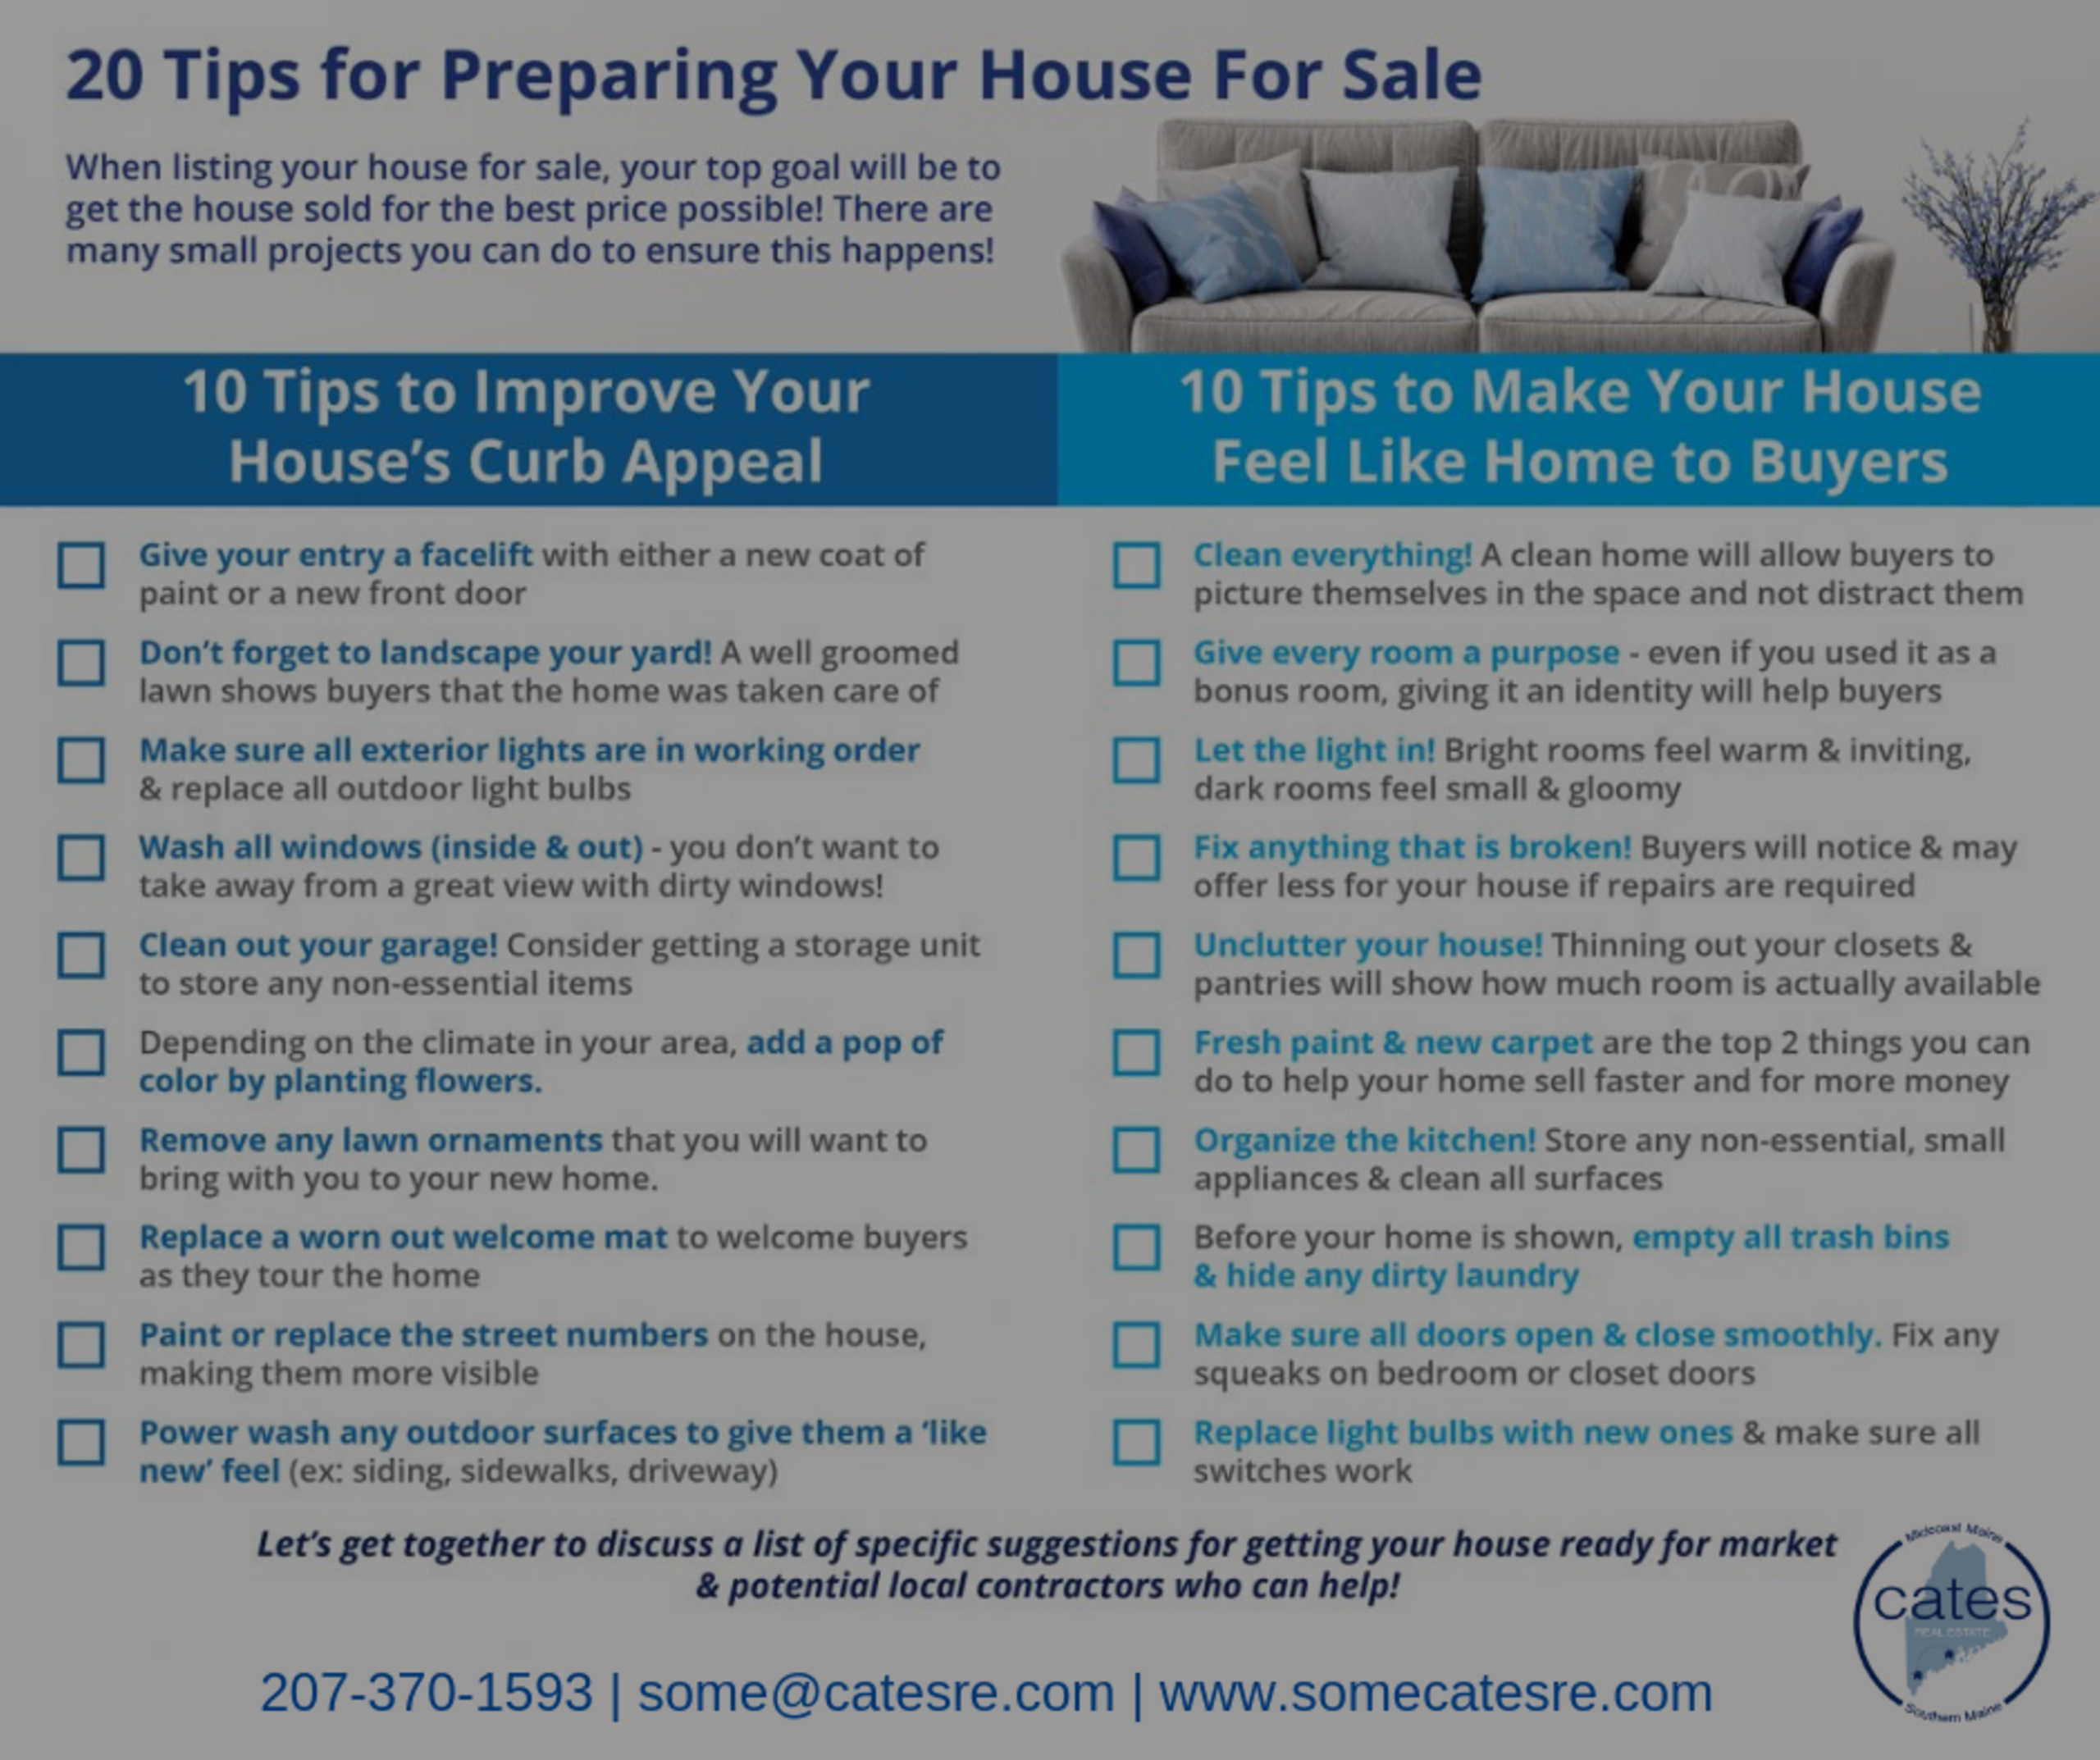 Tips for Preparing Your House for Sale